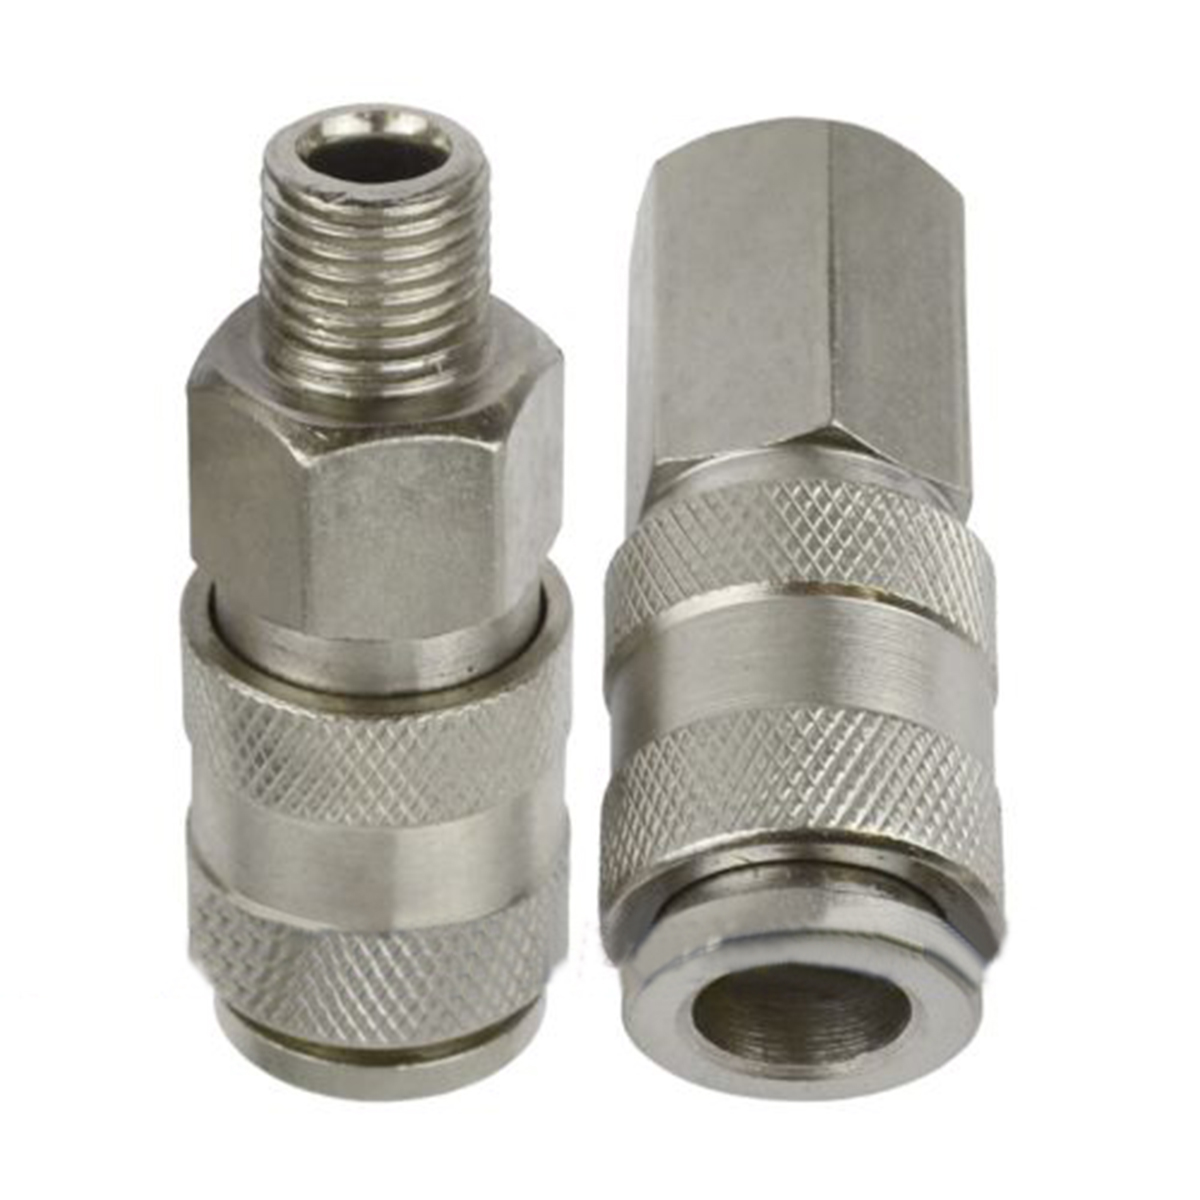 2pcs Euro Air Line Hose Compressor Connector Female/Male 1/4 BSP Thread Female Quick Release Fittings Mayitr For Home Tools 2pcs air line hose connector euro female quick release fitting with 1 4 bsp male thread mayitr for home tool accessories